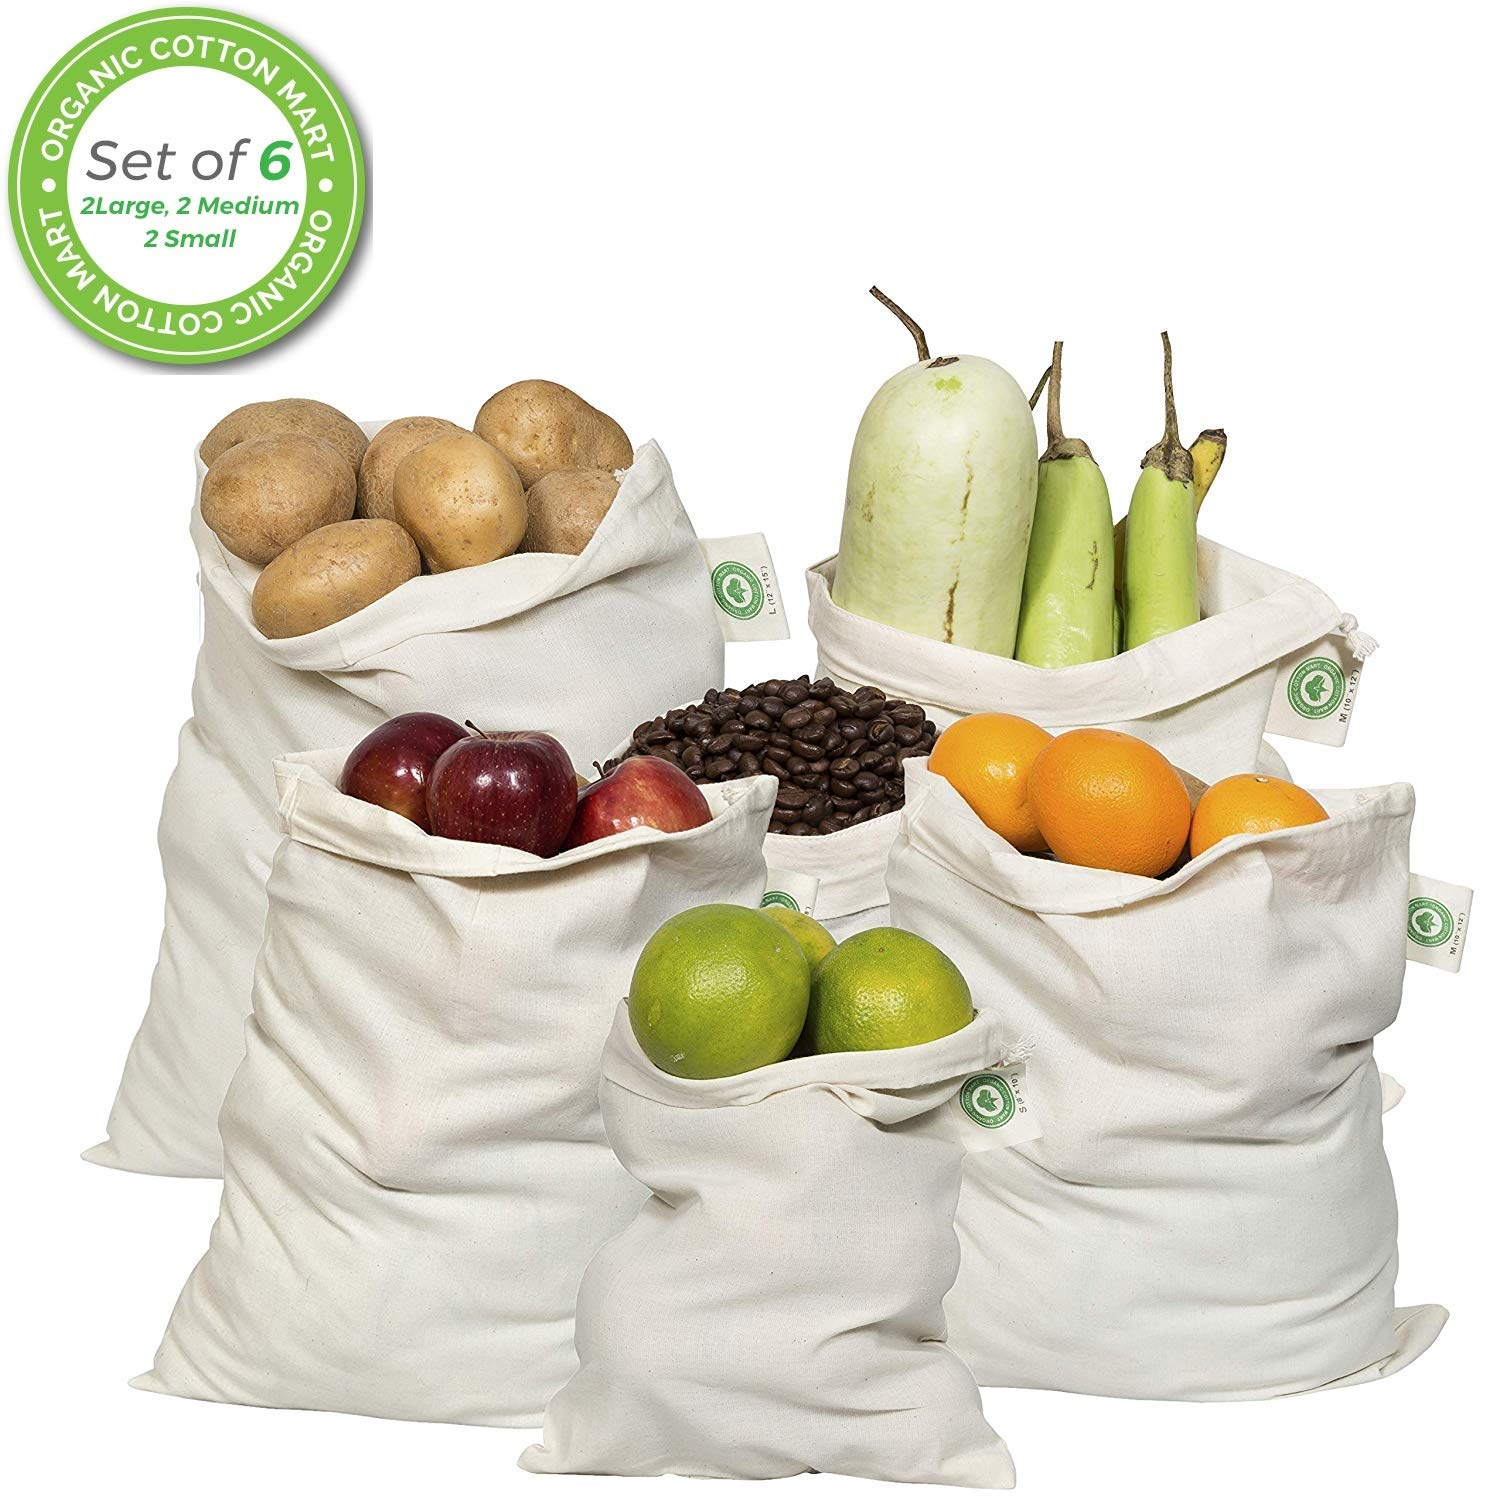 Amazon.com: Reusable Produce Bags Cotton Washable - Organic Cotton  Vegetable Bags - Cloth Bag with Drawstring - Muslin Cotton Fabric Produce  Bags - Bread ...